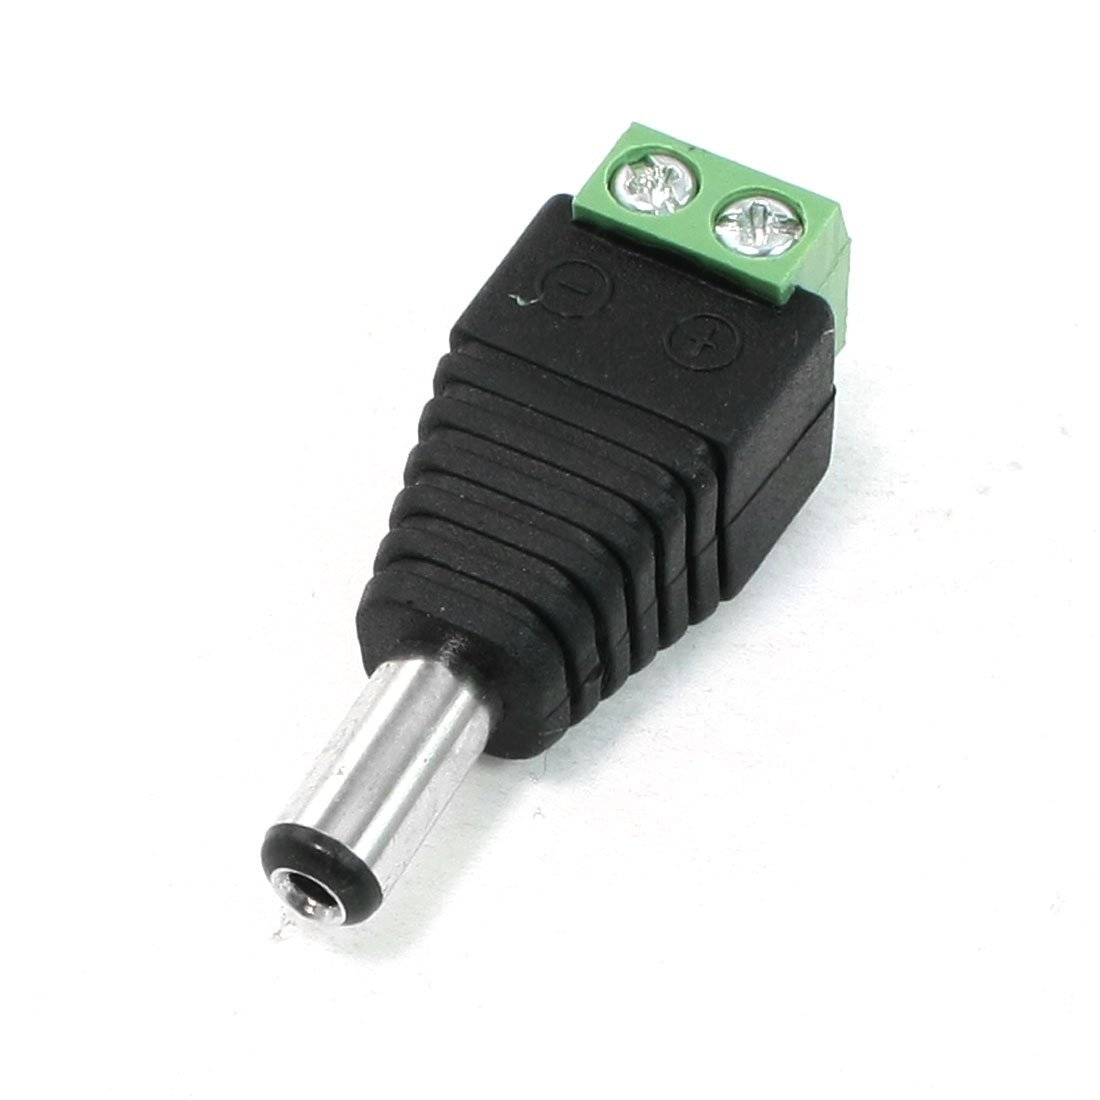 5 5 2 1mm Dc Power Male Female Plug Jack Adapter Connector